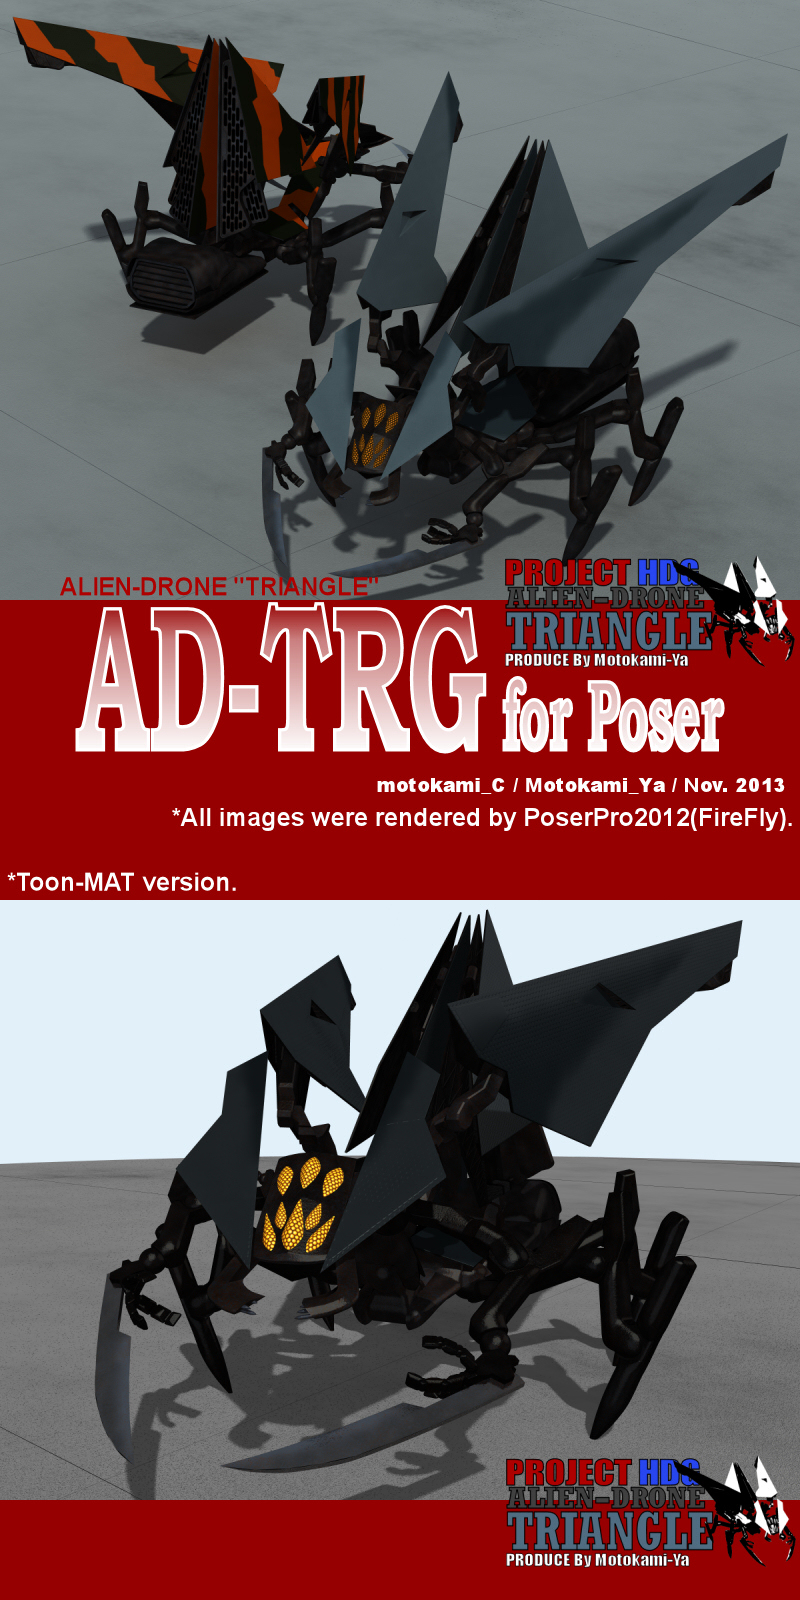 AD-TRG for Poser